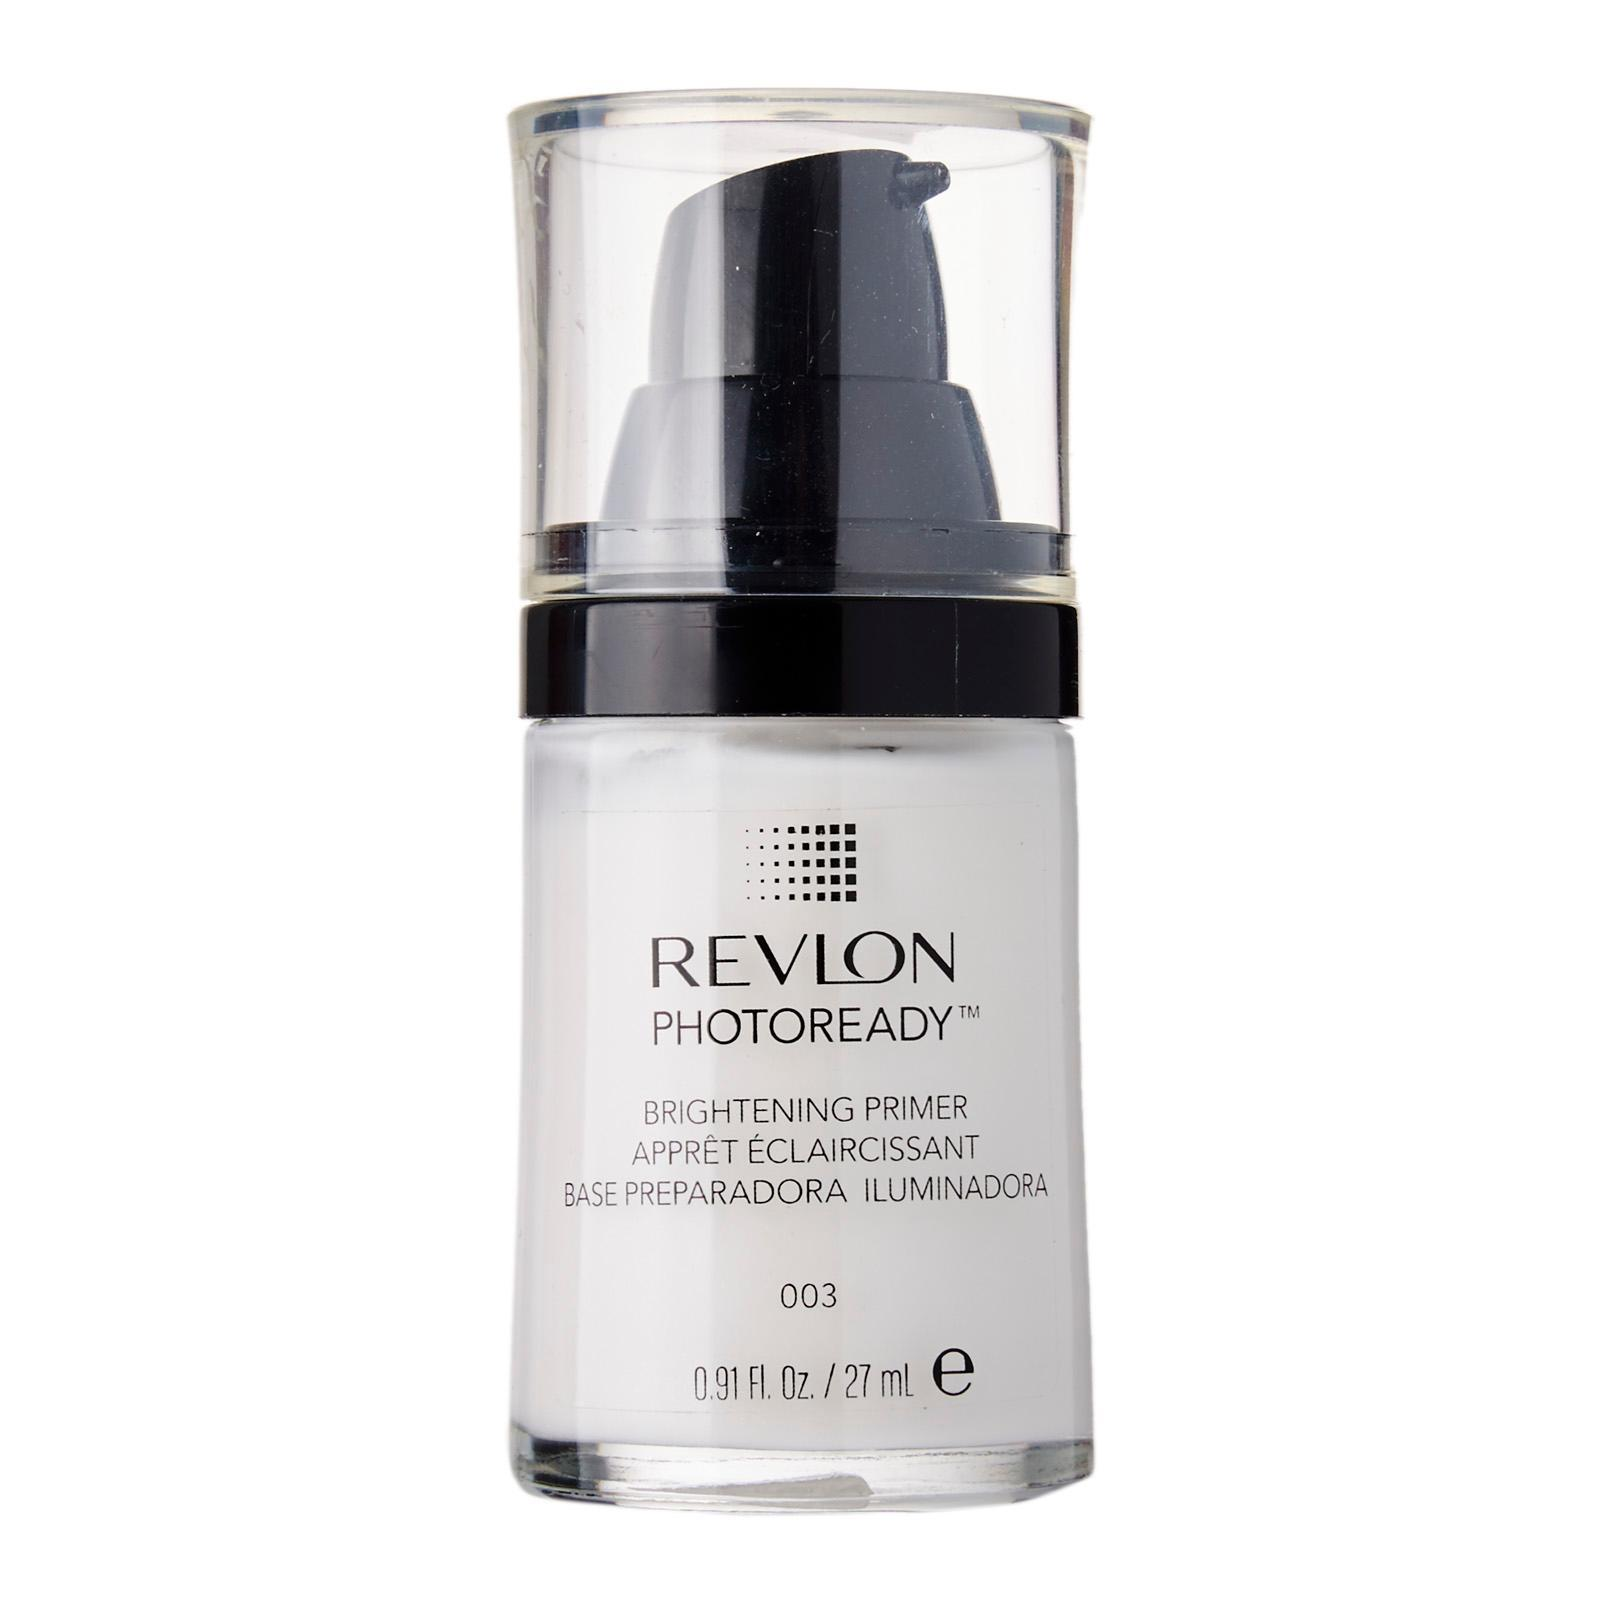 Image result for Revlon Photoready Brightening